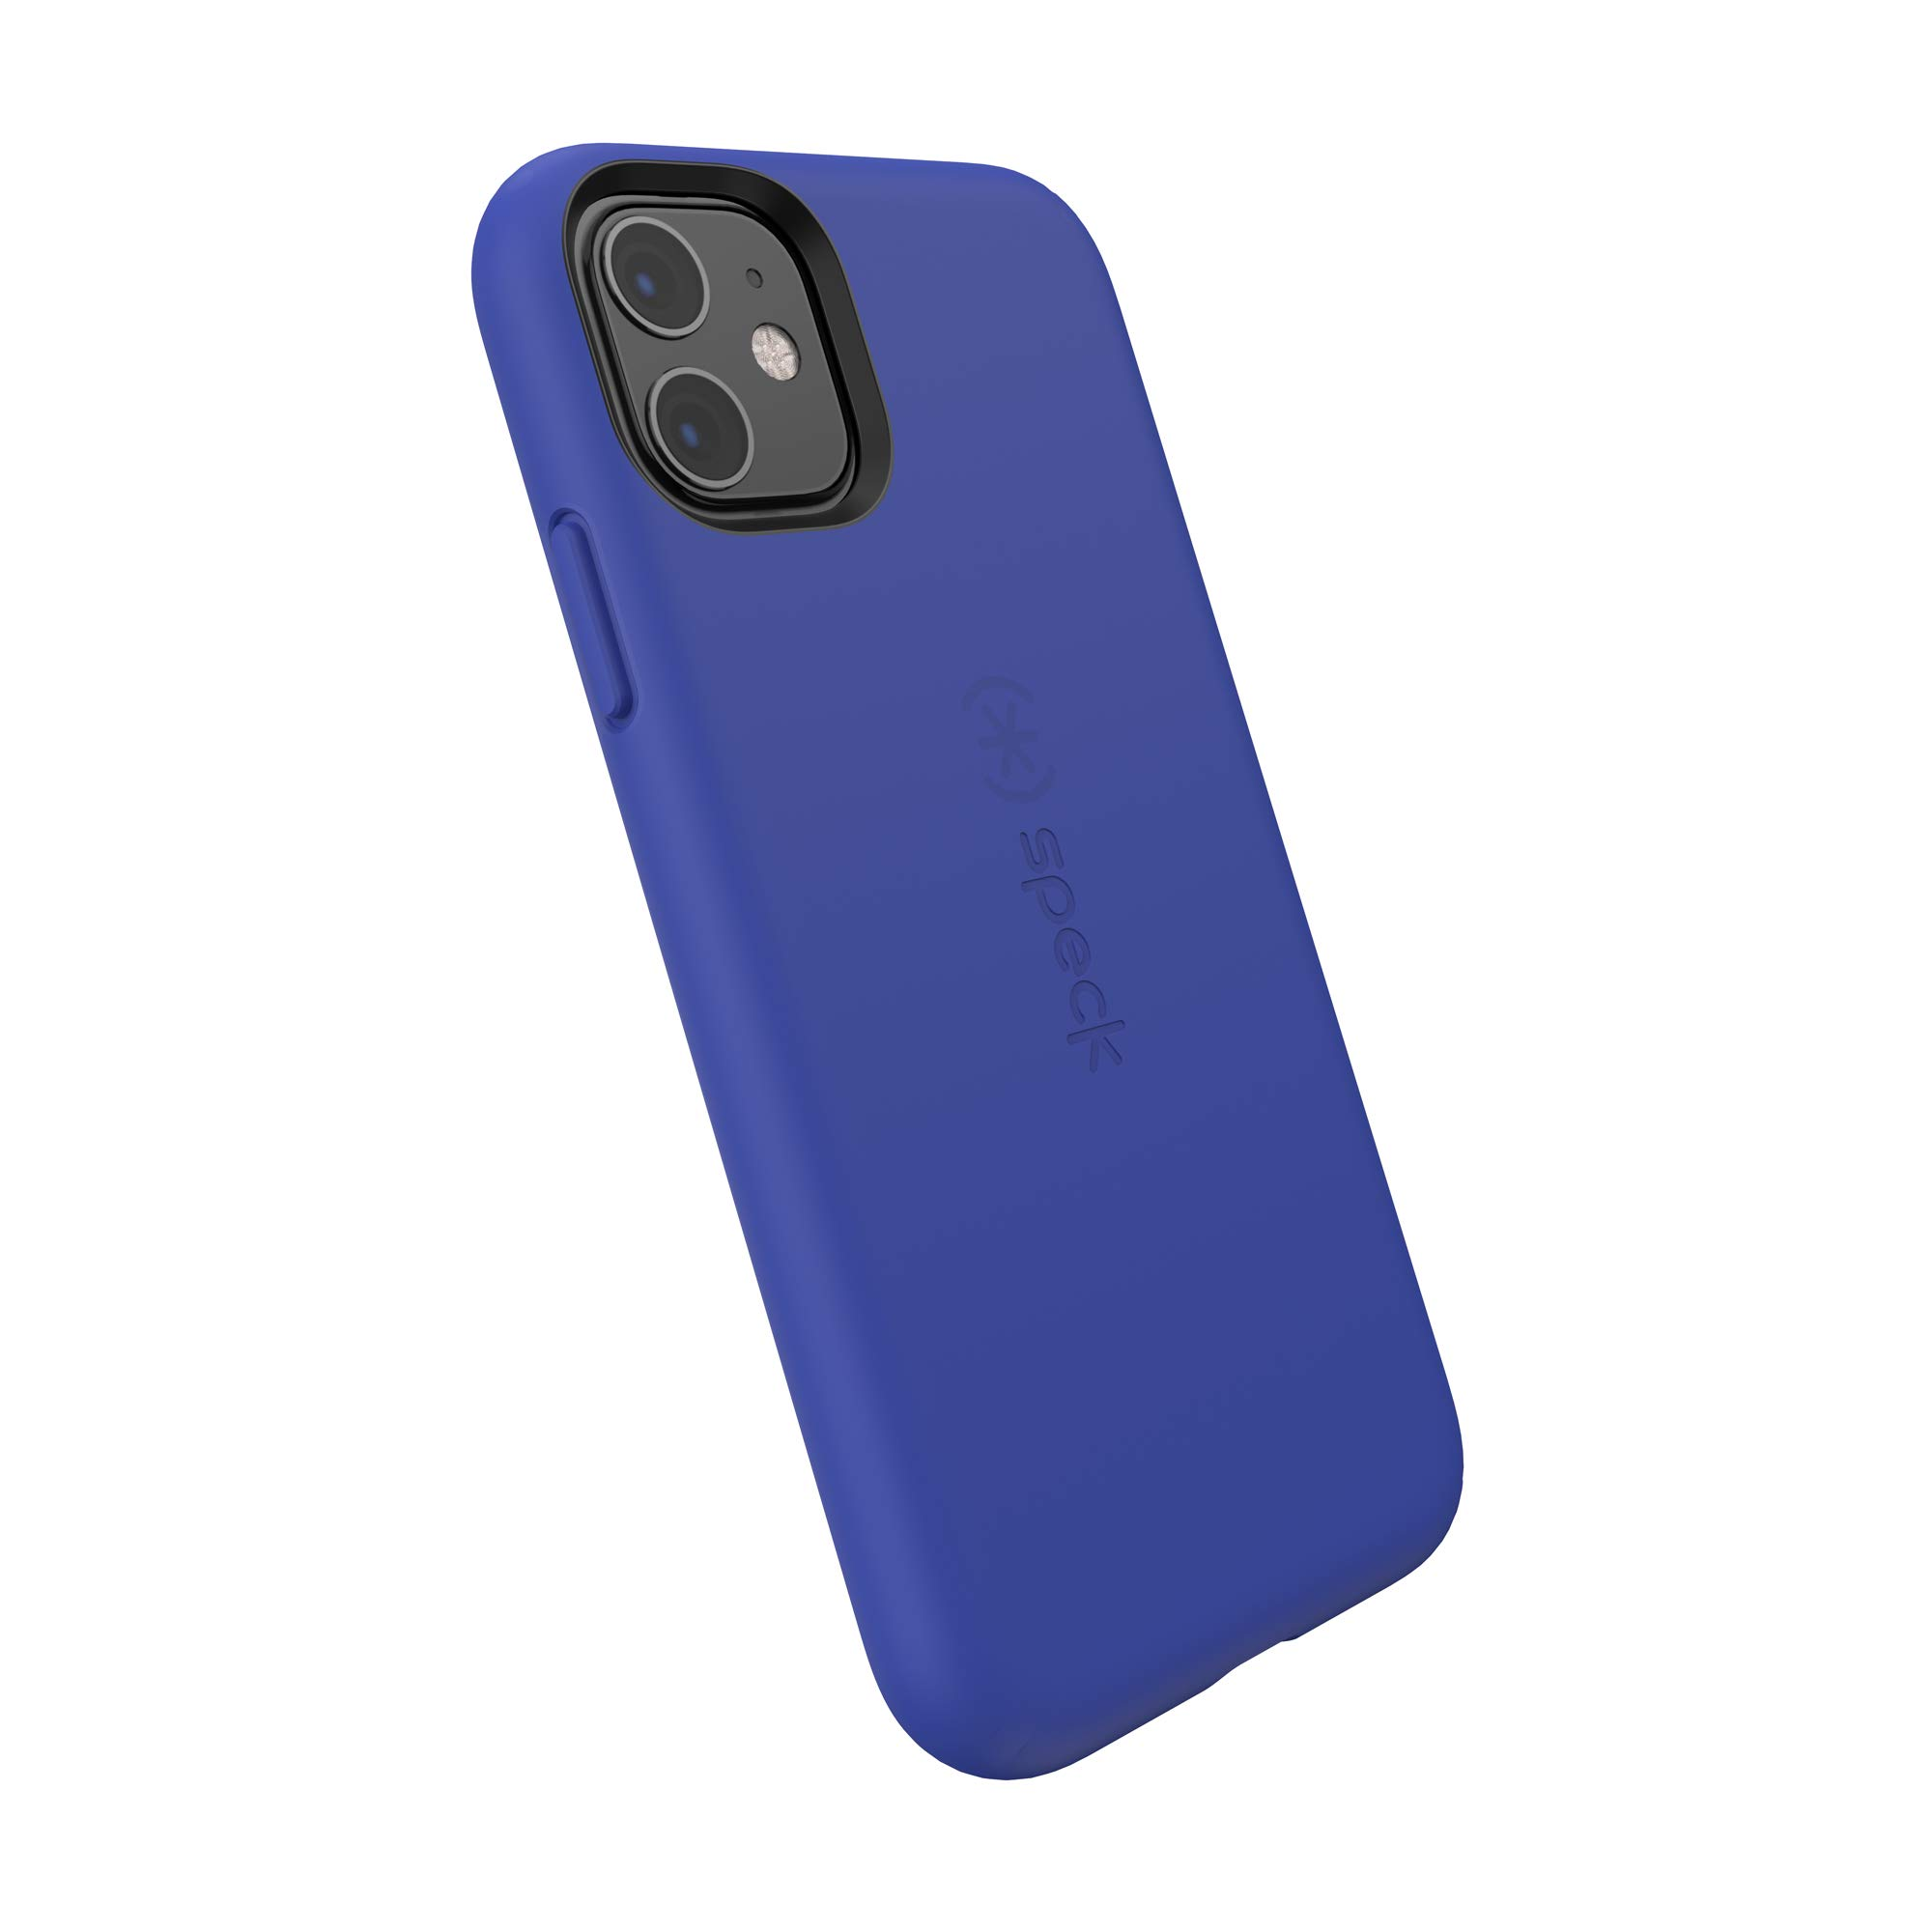 Speck CandyShell Fit iPhone 11 Case, Blueberry Blue/Blueberry Blue